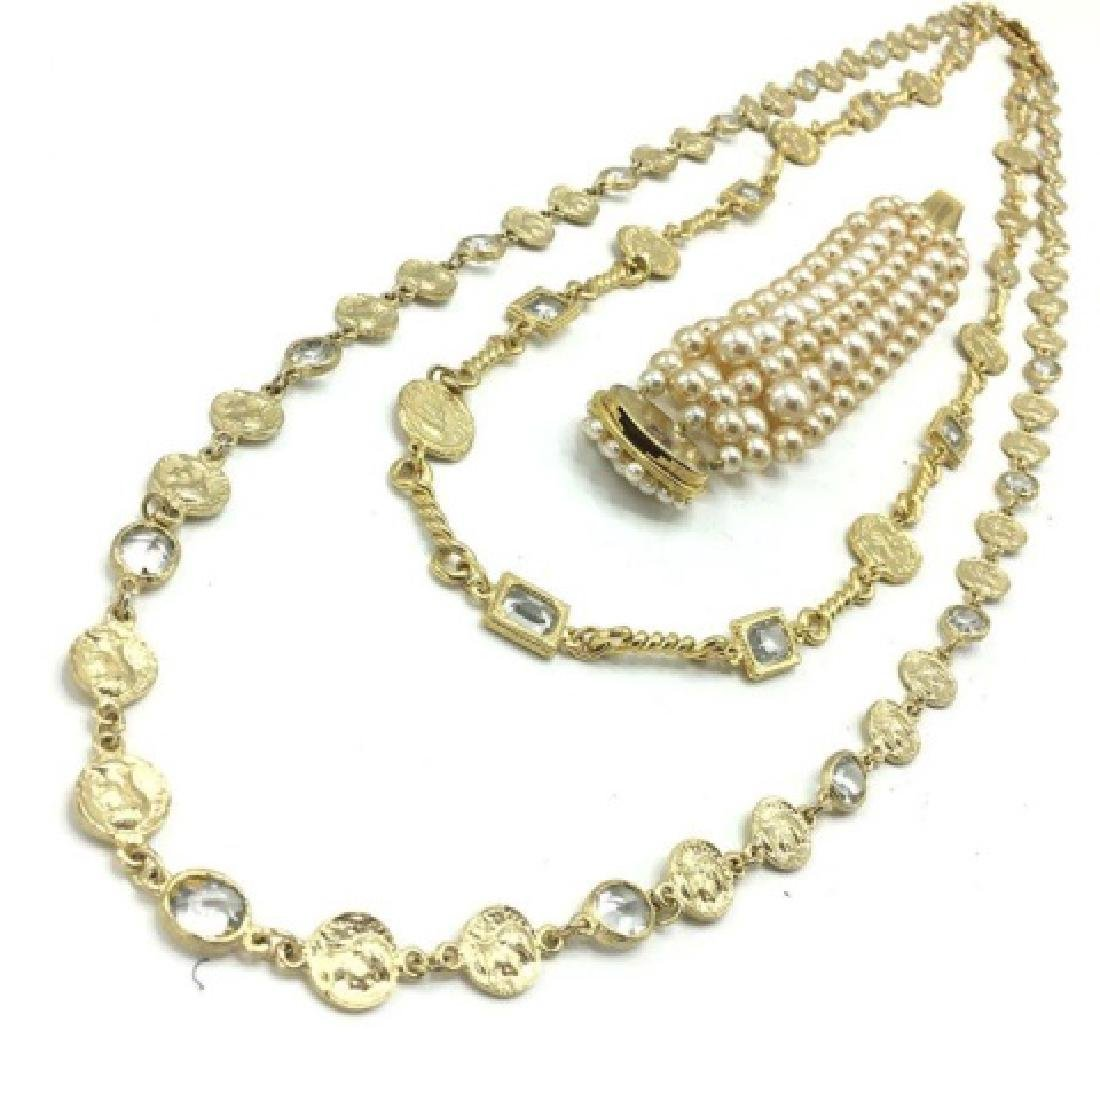 Costume Pearl Bracelet, Crystal & Coin Necklace - 3